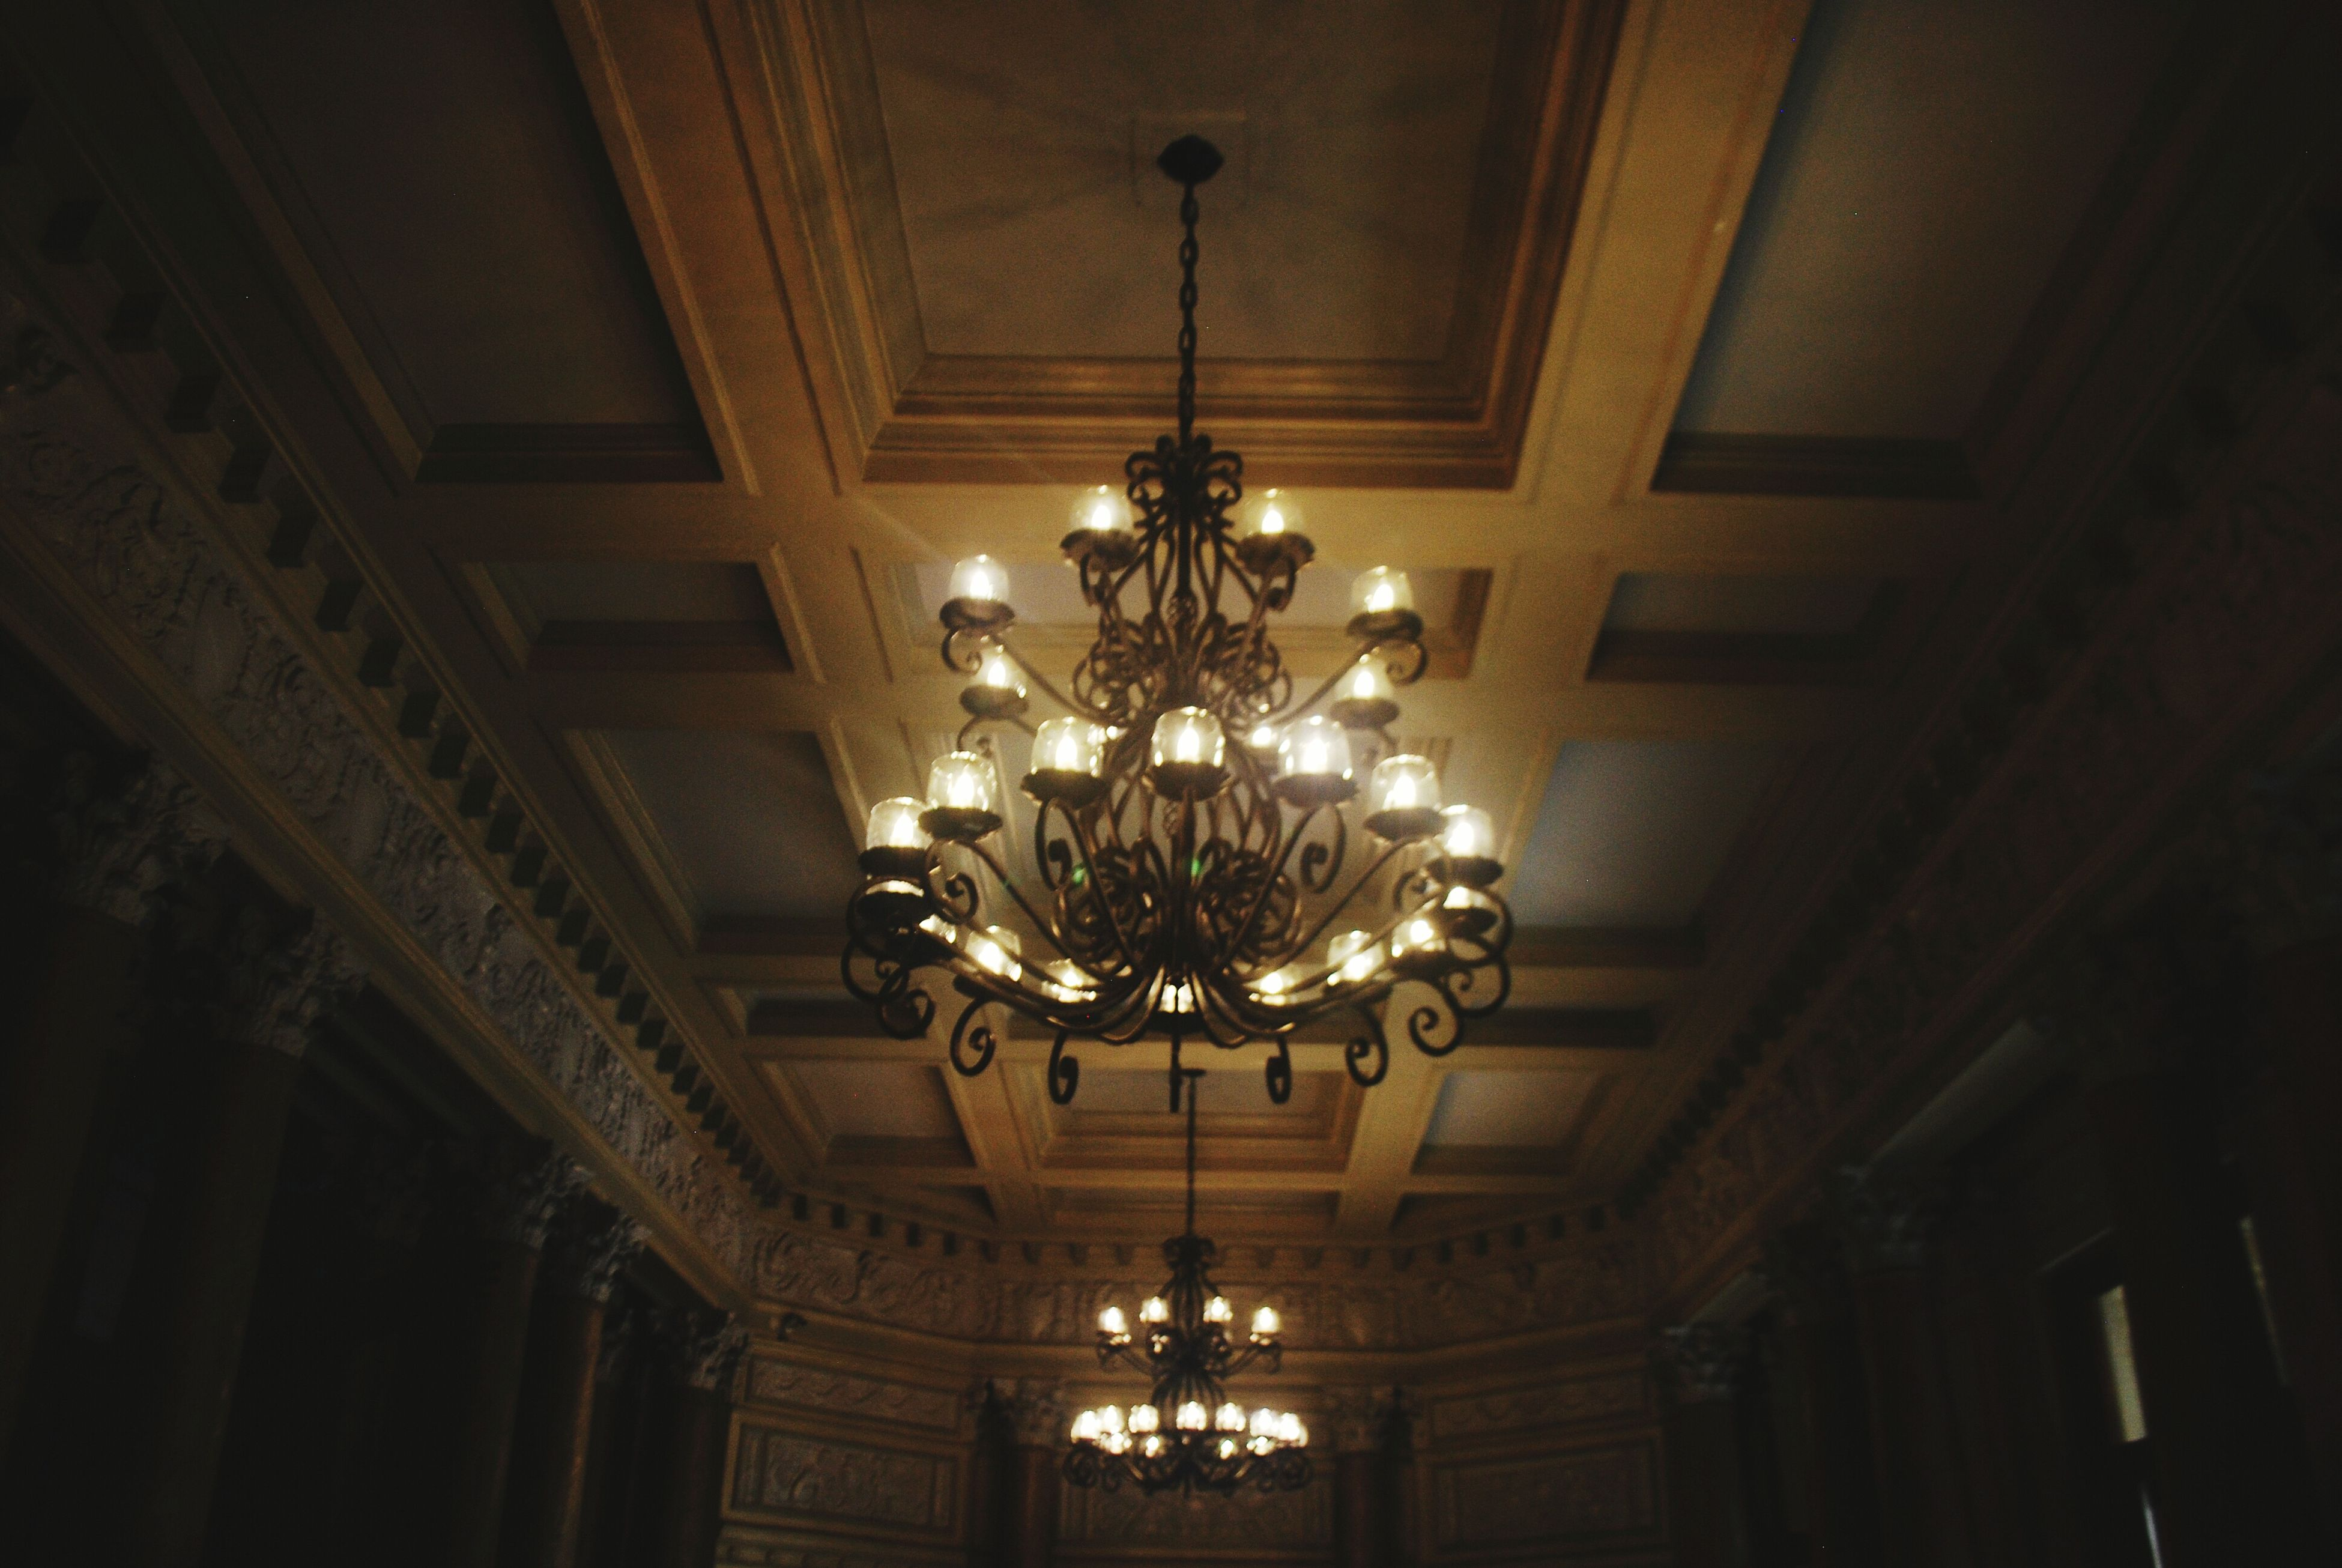 indoors, ceiling, lighting equipment, illuminated, hanging, chandelier, low angle view, decoration, electric lamp, electricity, electric light, architecture, luxury, built structure, hanging light, decor, light bulb, ornate, pendant light, light - natural phenomenon